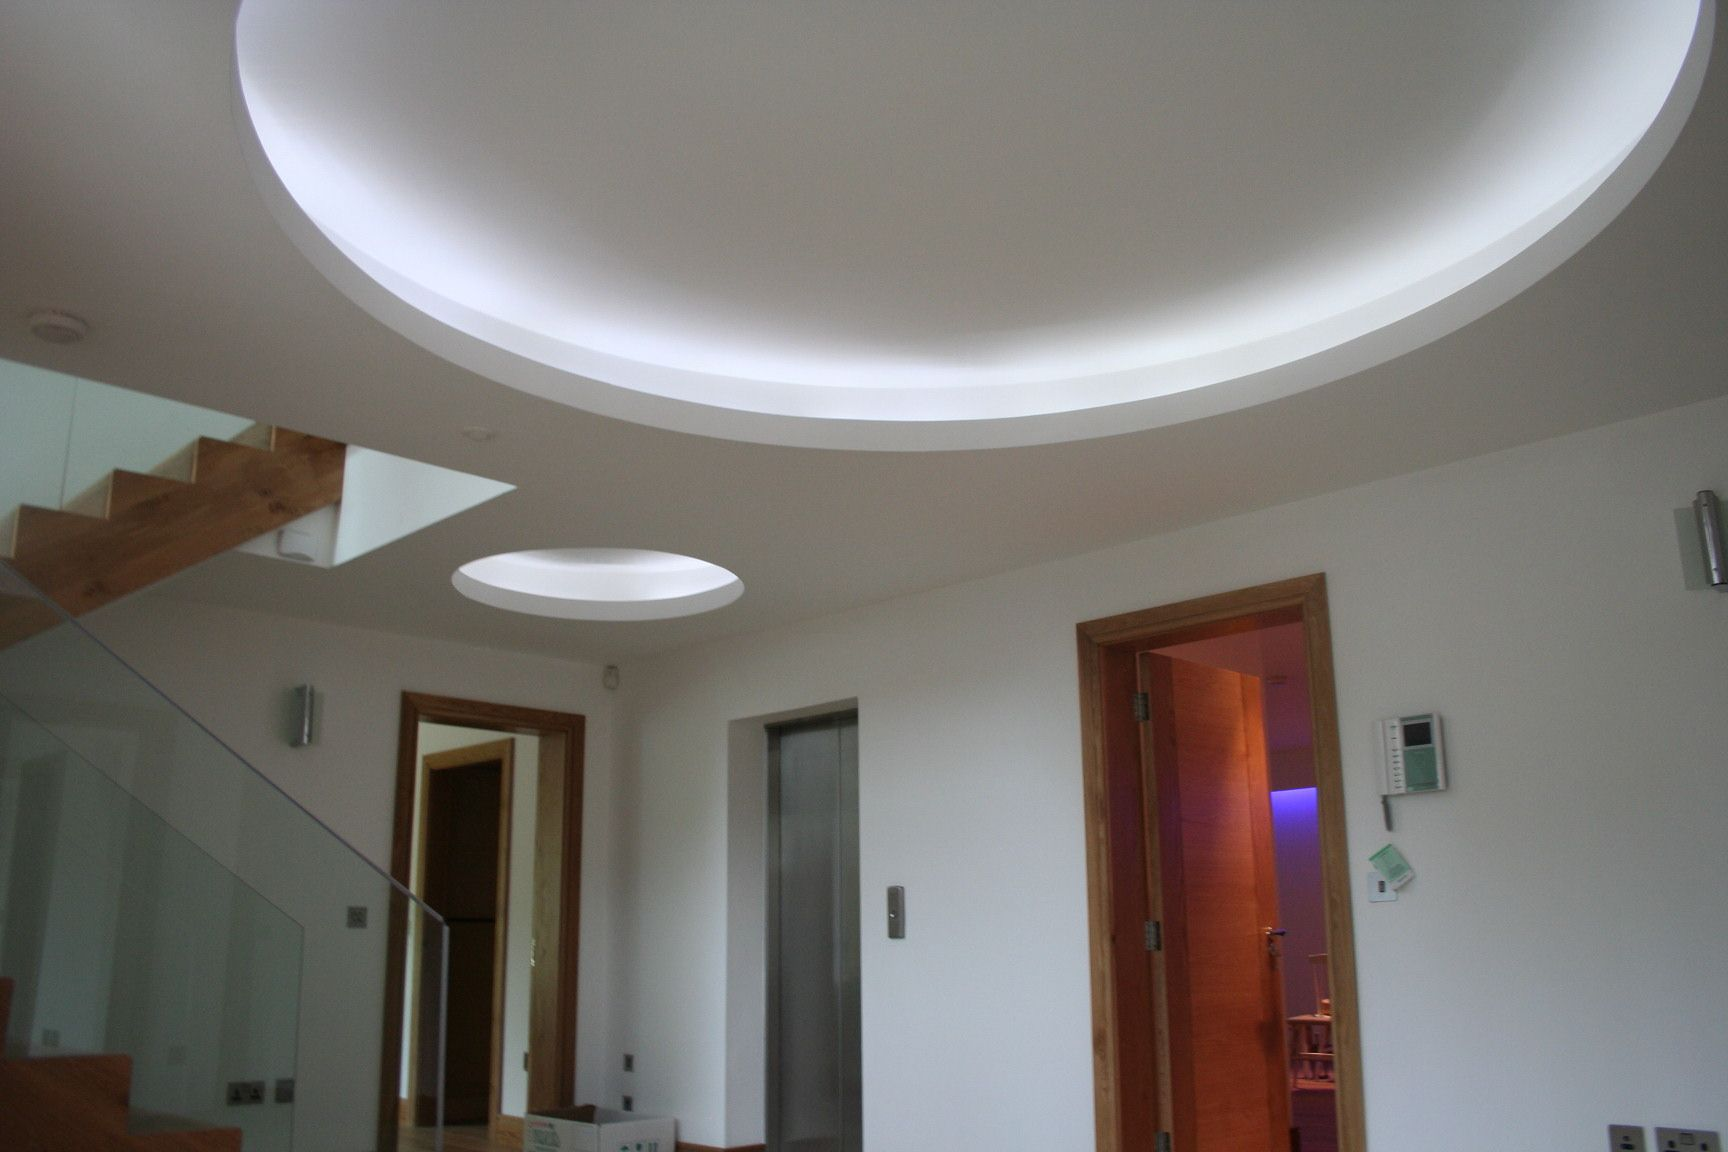 Round Ceiling Lighting With Cove Design Idea